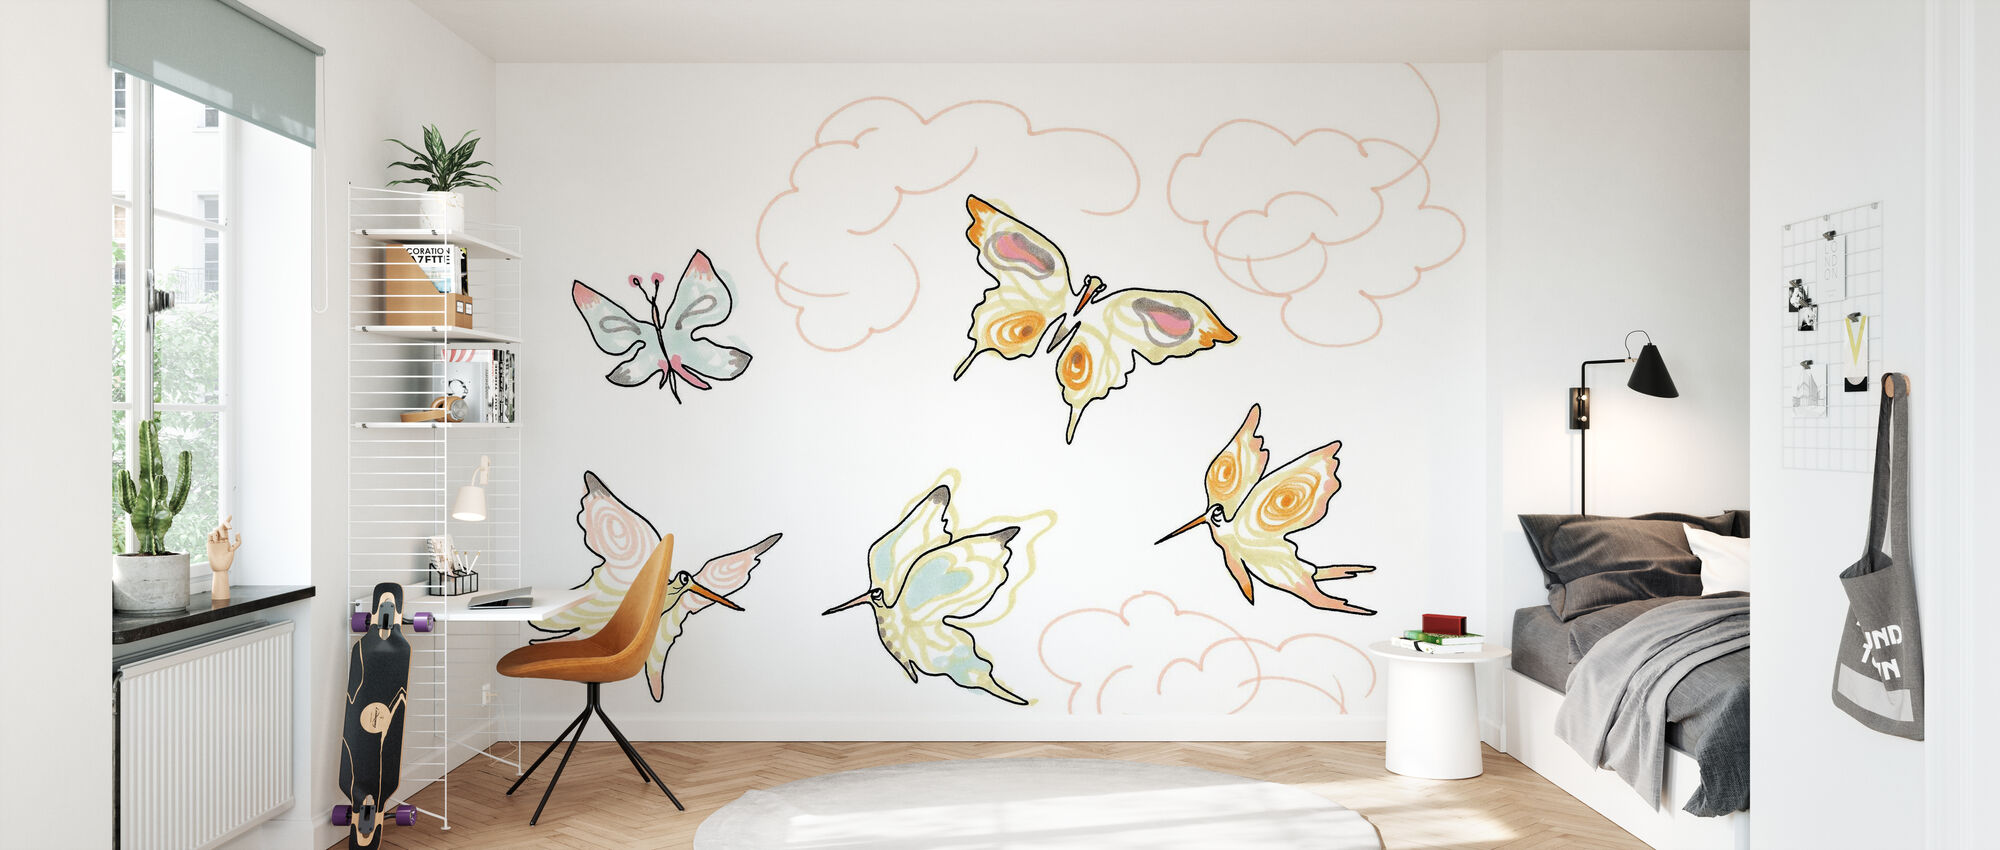 Whose Butterfly 2 - Wallpaper - Kids Room